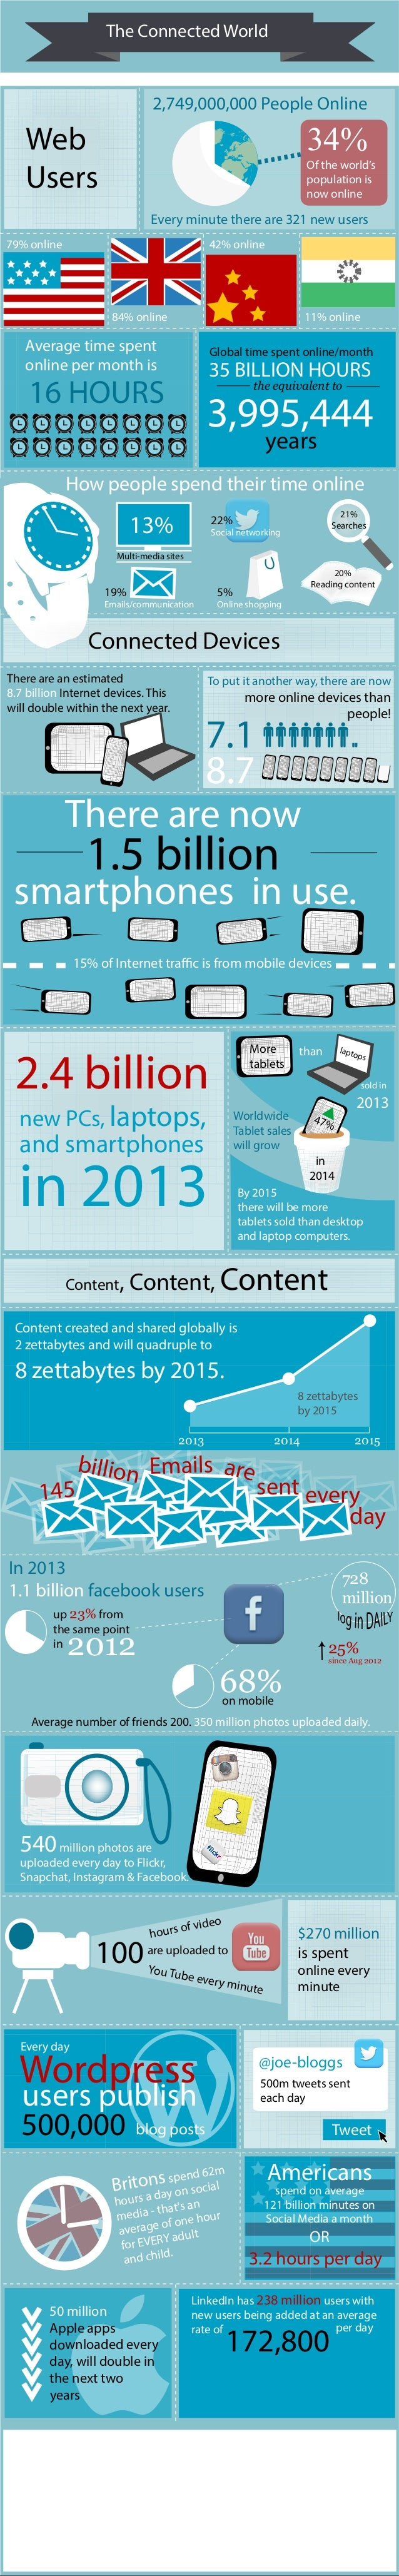 Average time spent online per month is The Connected World Content, Content, Content Web Users There are an estimated 8.7 ...